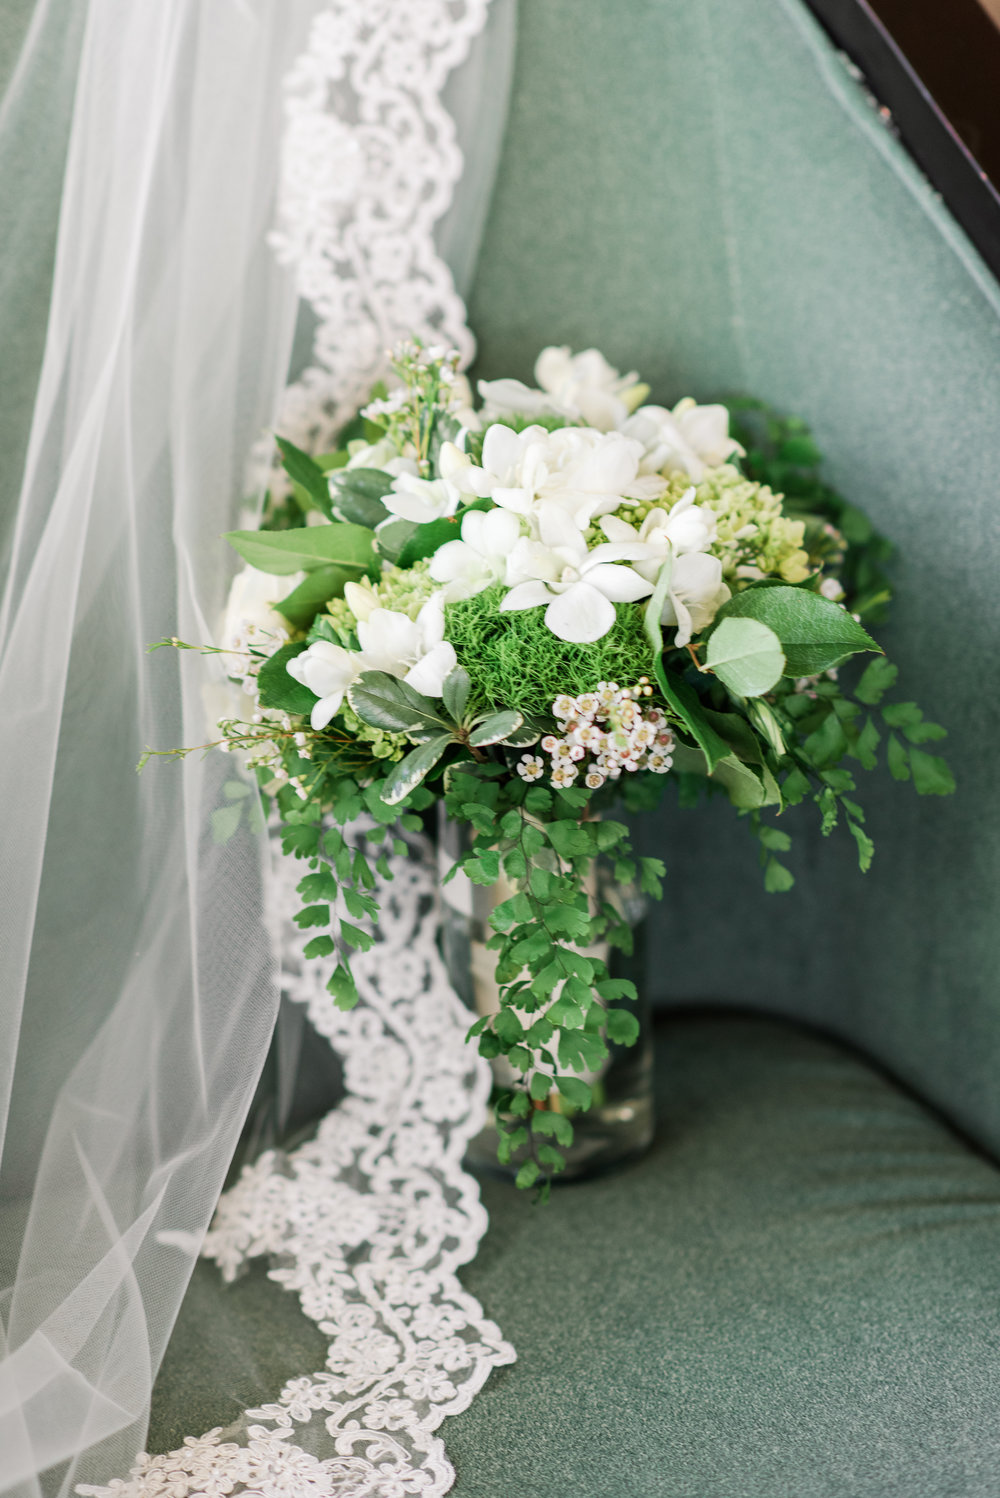 White Bridal Bouquet with Lace Veil - A Black Tie, South Carolina Commerce Club Wedding